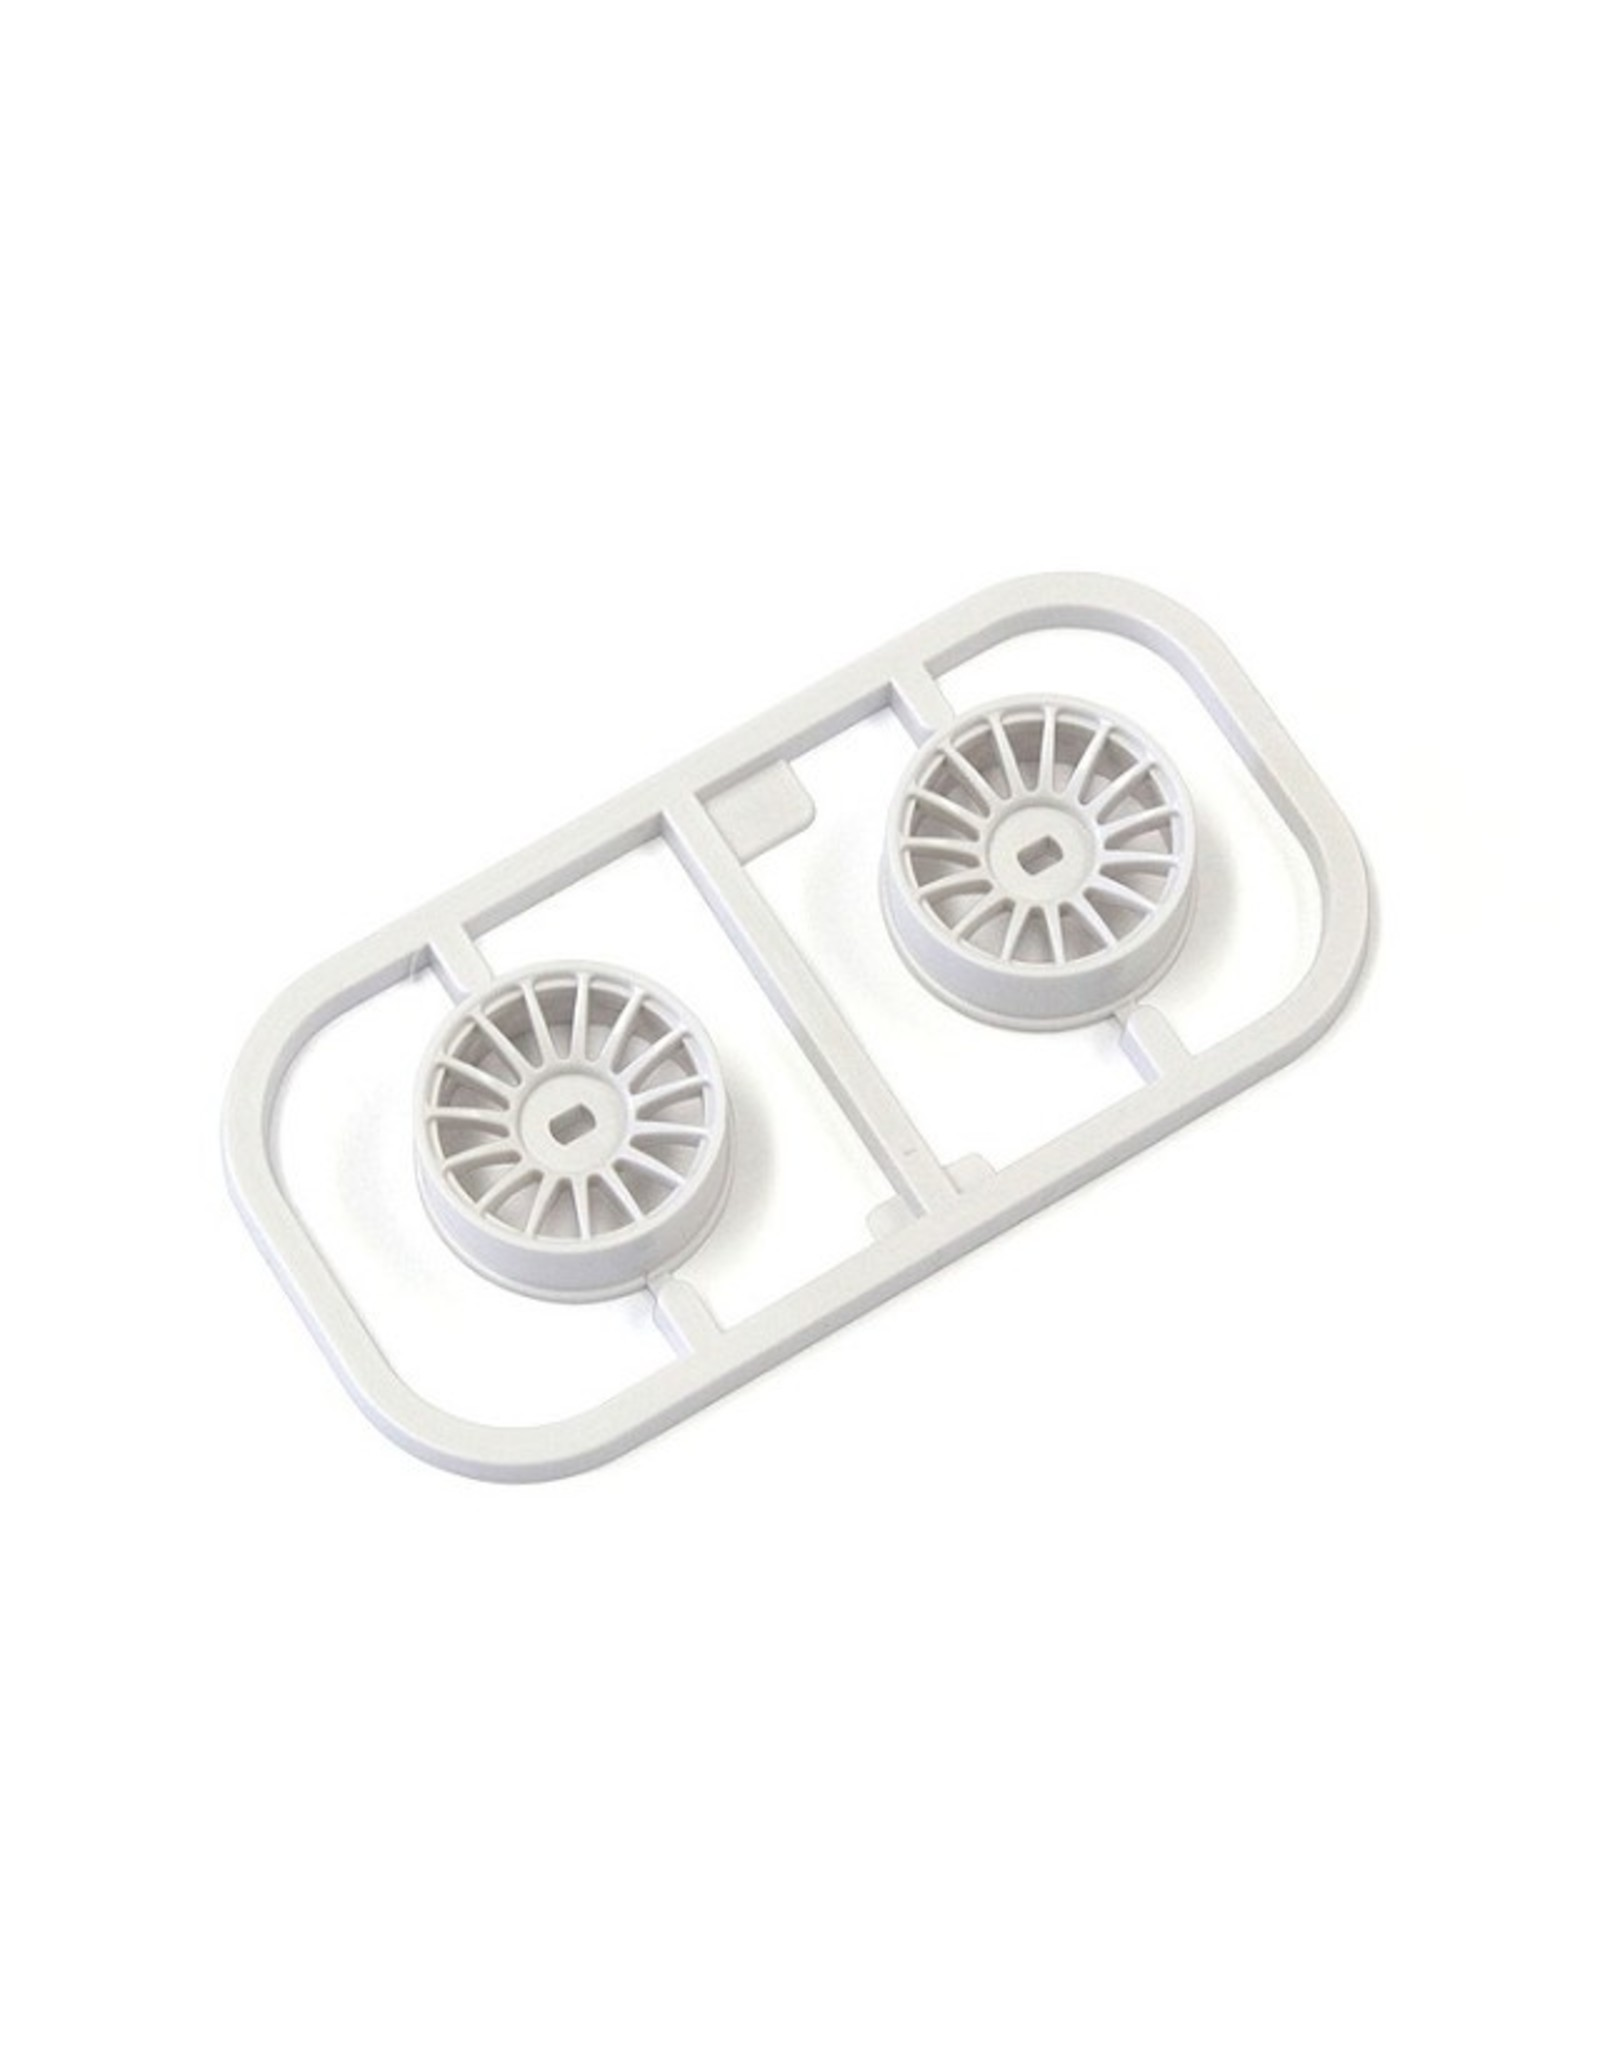 Kyosho Multi Wheel N/Offset 1.5 (White/AWD/2pcs.) (MDH100W-N15)